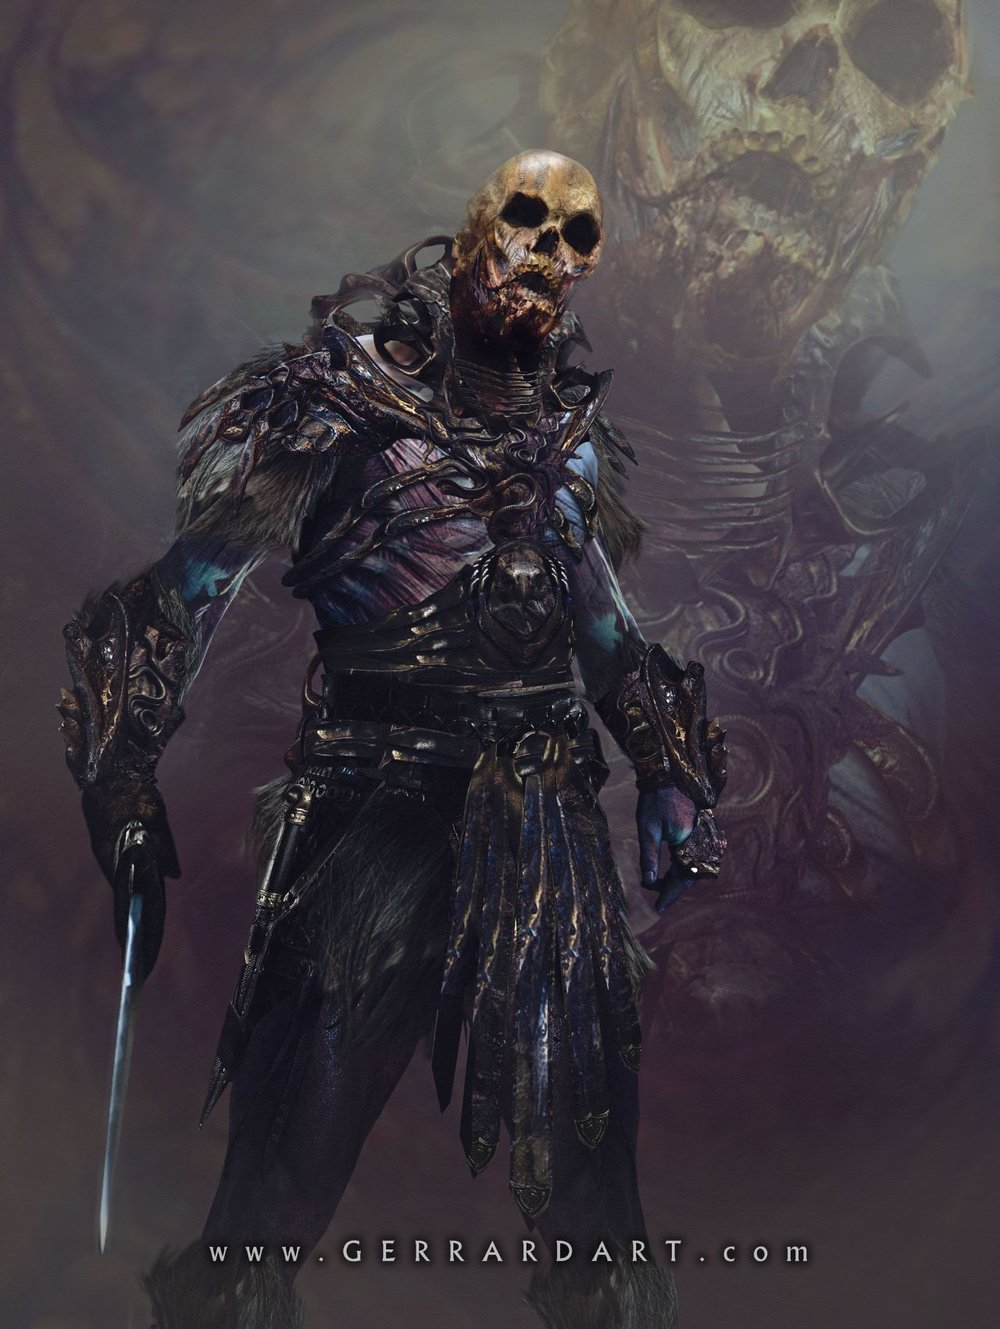 badass-masters-of-the-universe-concept-art-gives-the-villains-a-dark-horrific-redesign